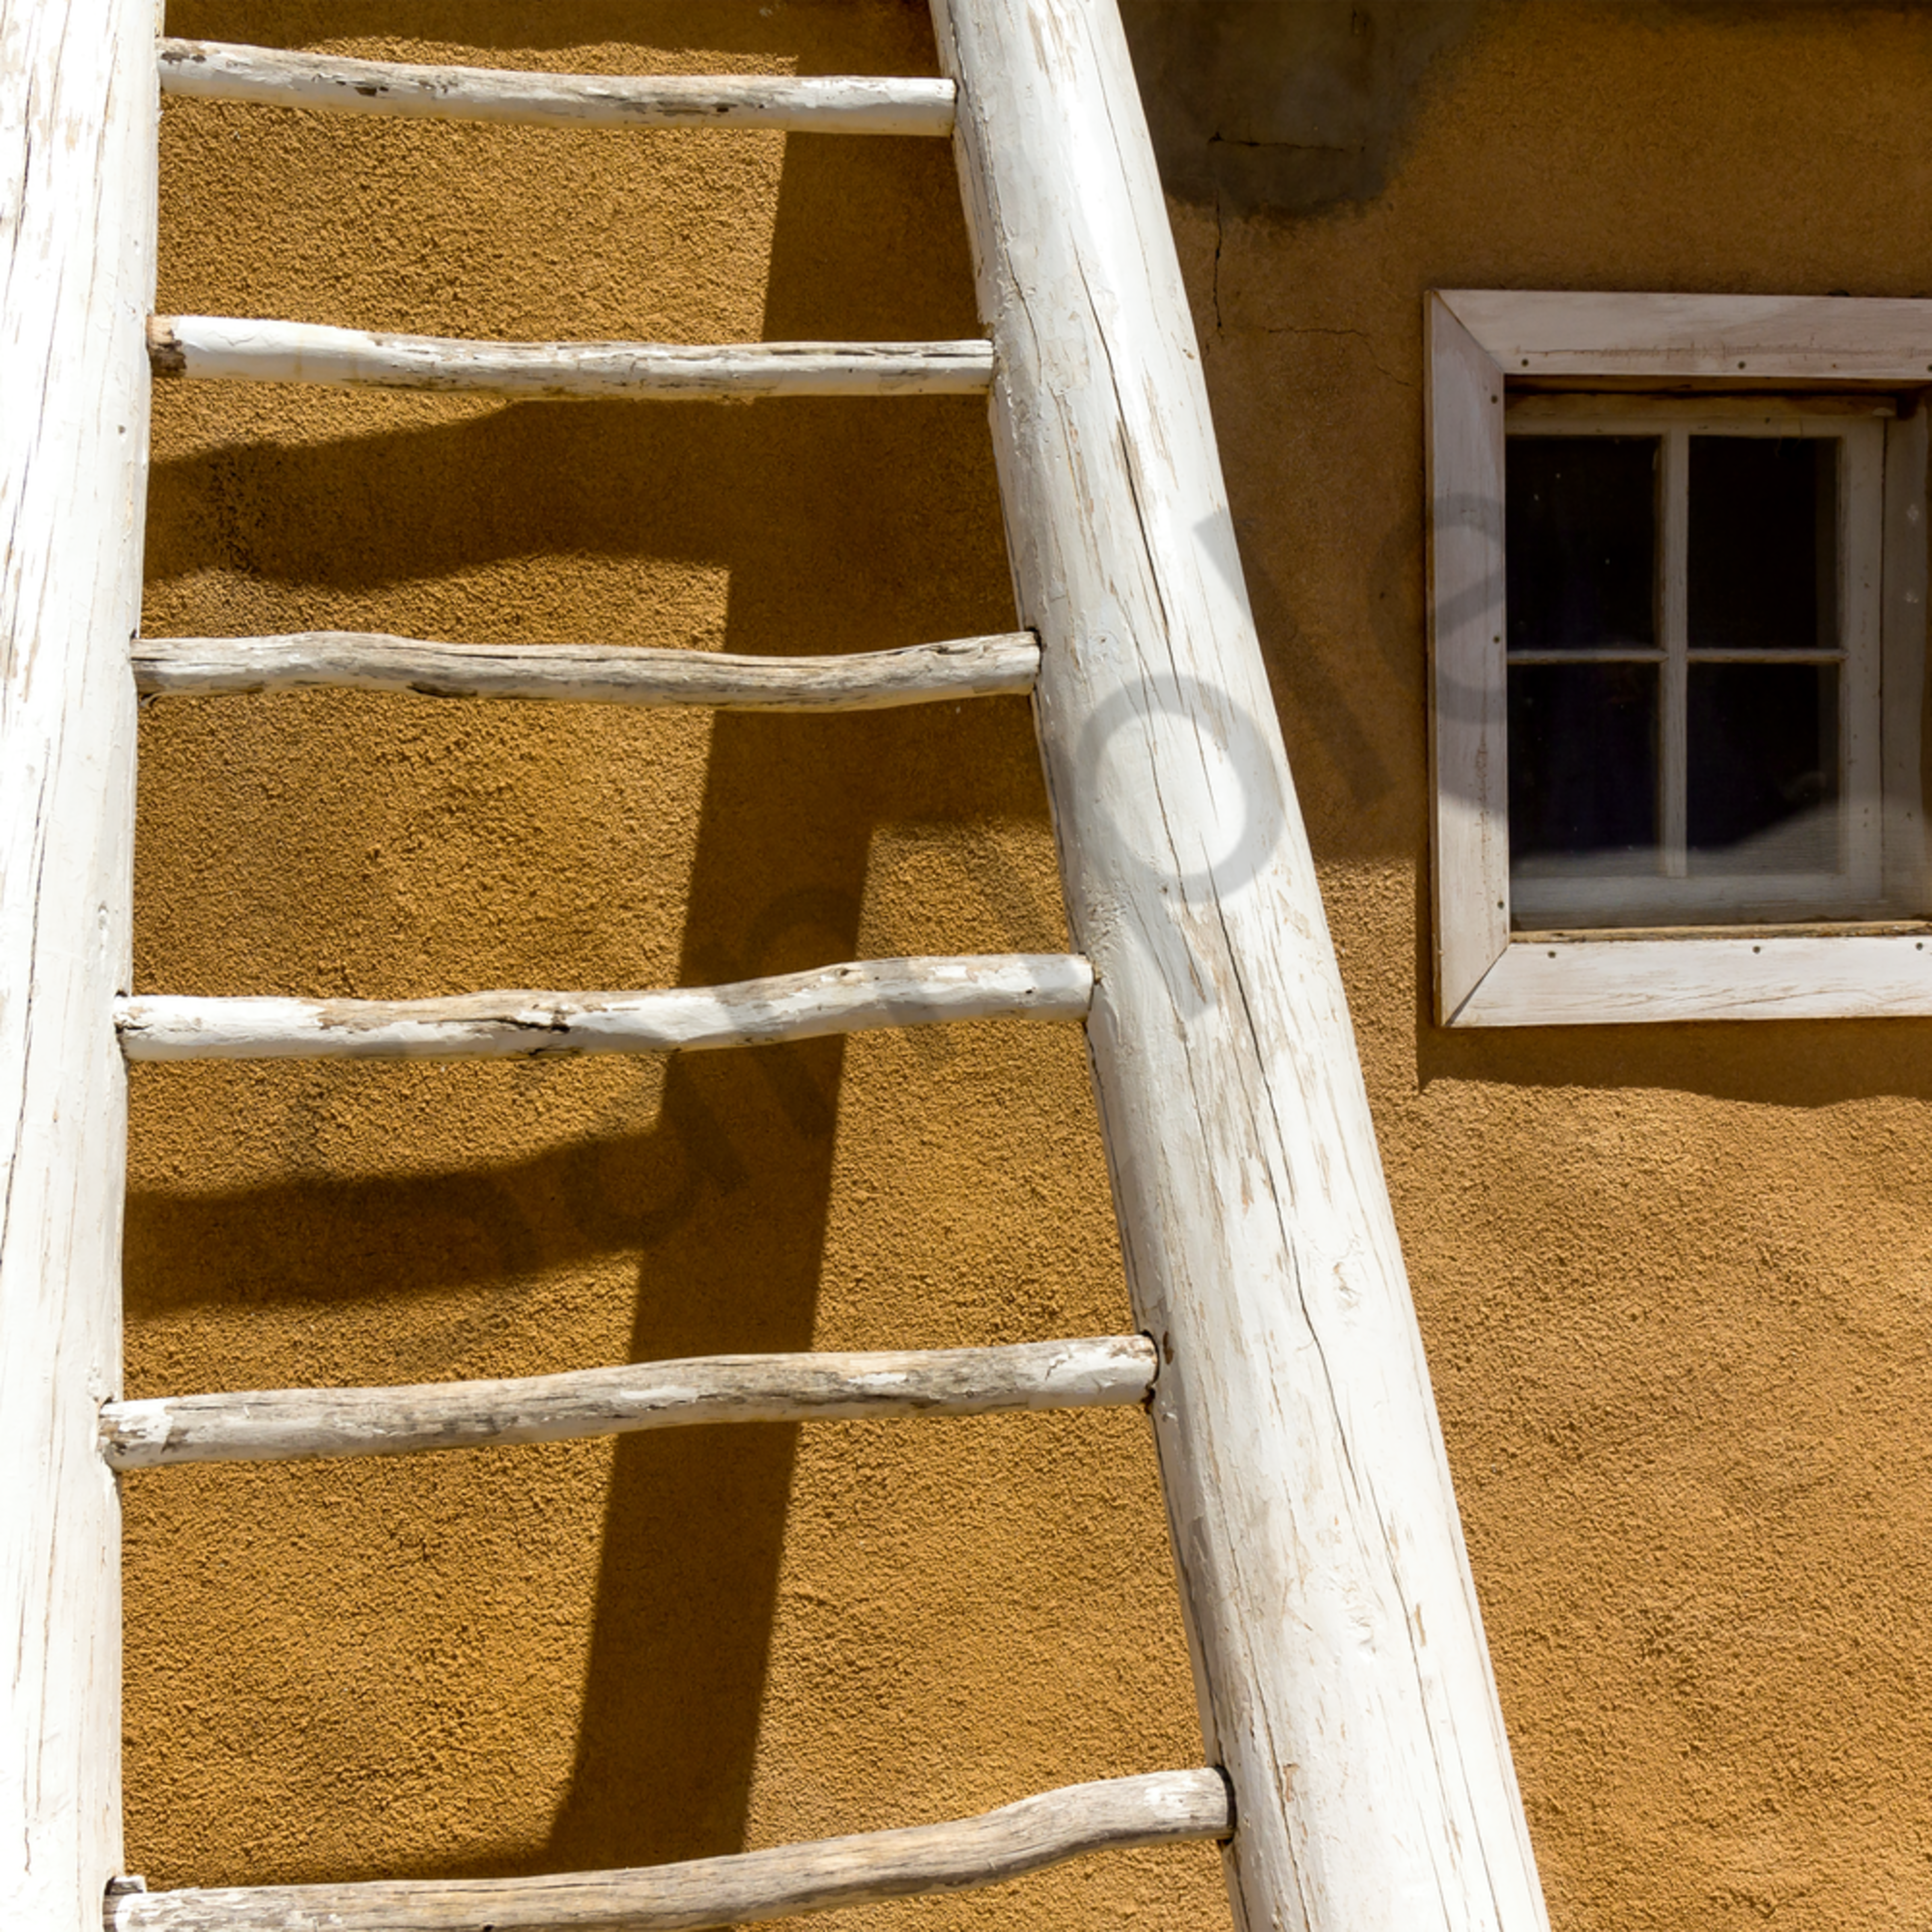 Acoma idian reservation adobe wall with ladder. new mexico ii nca5ml